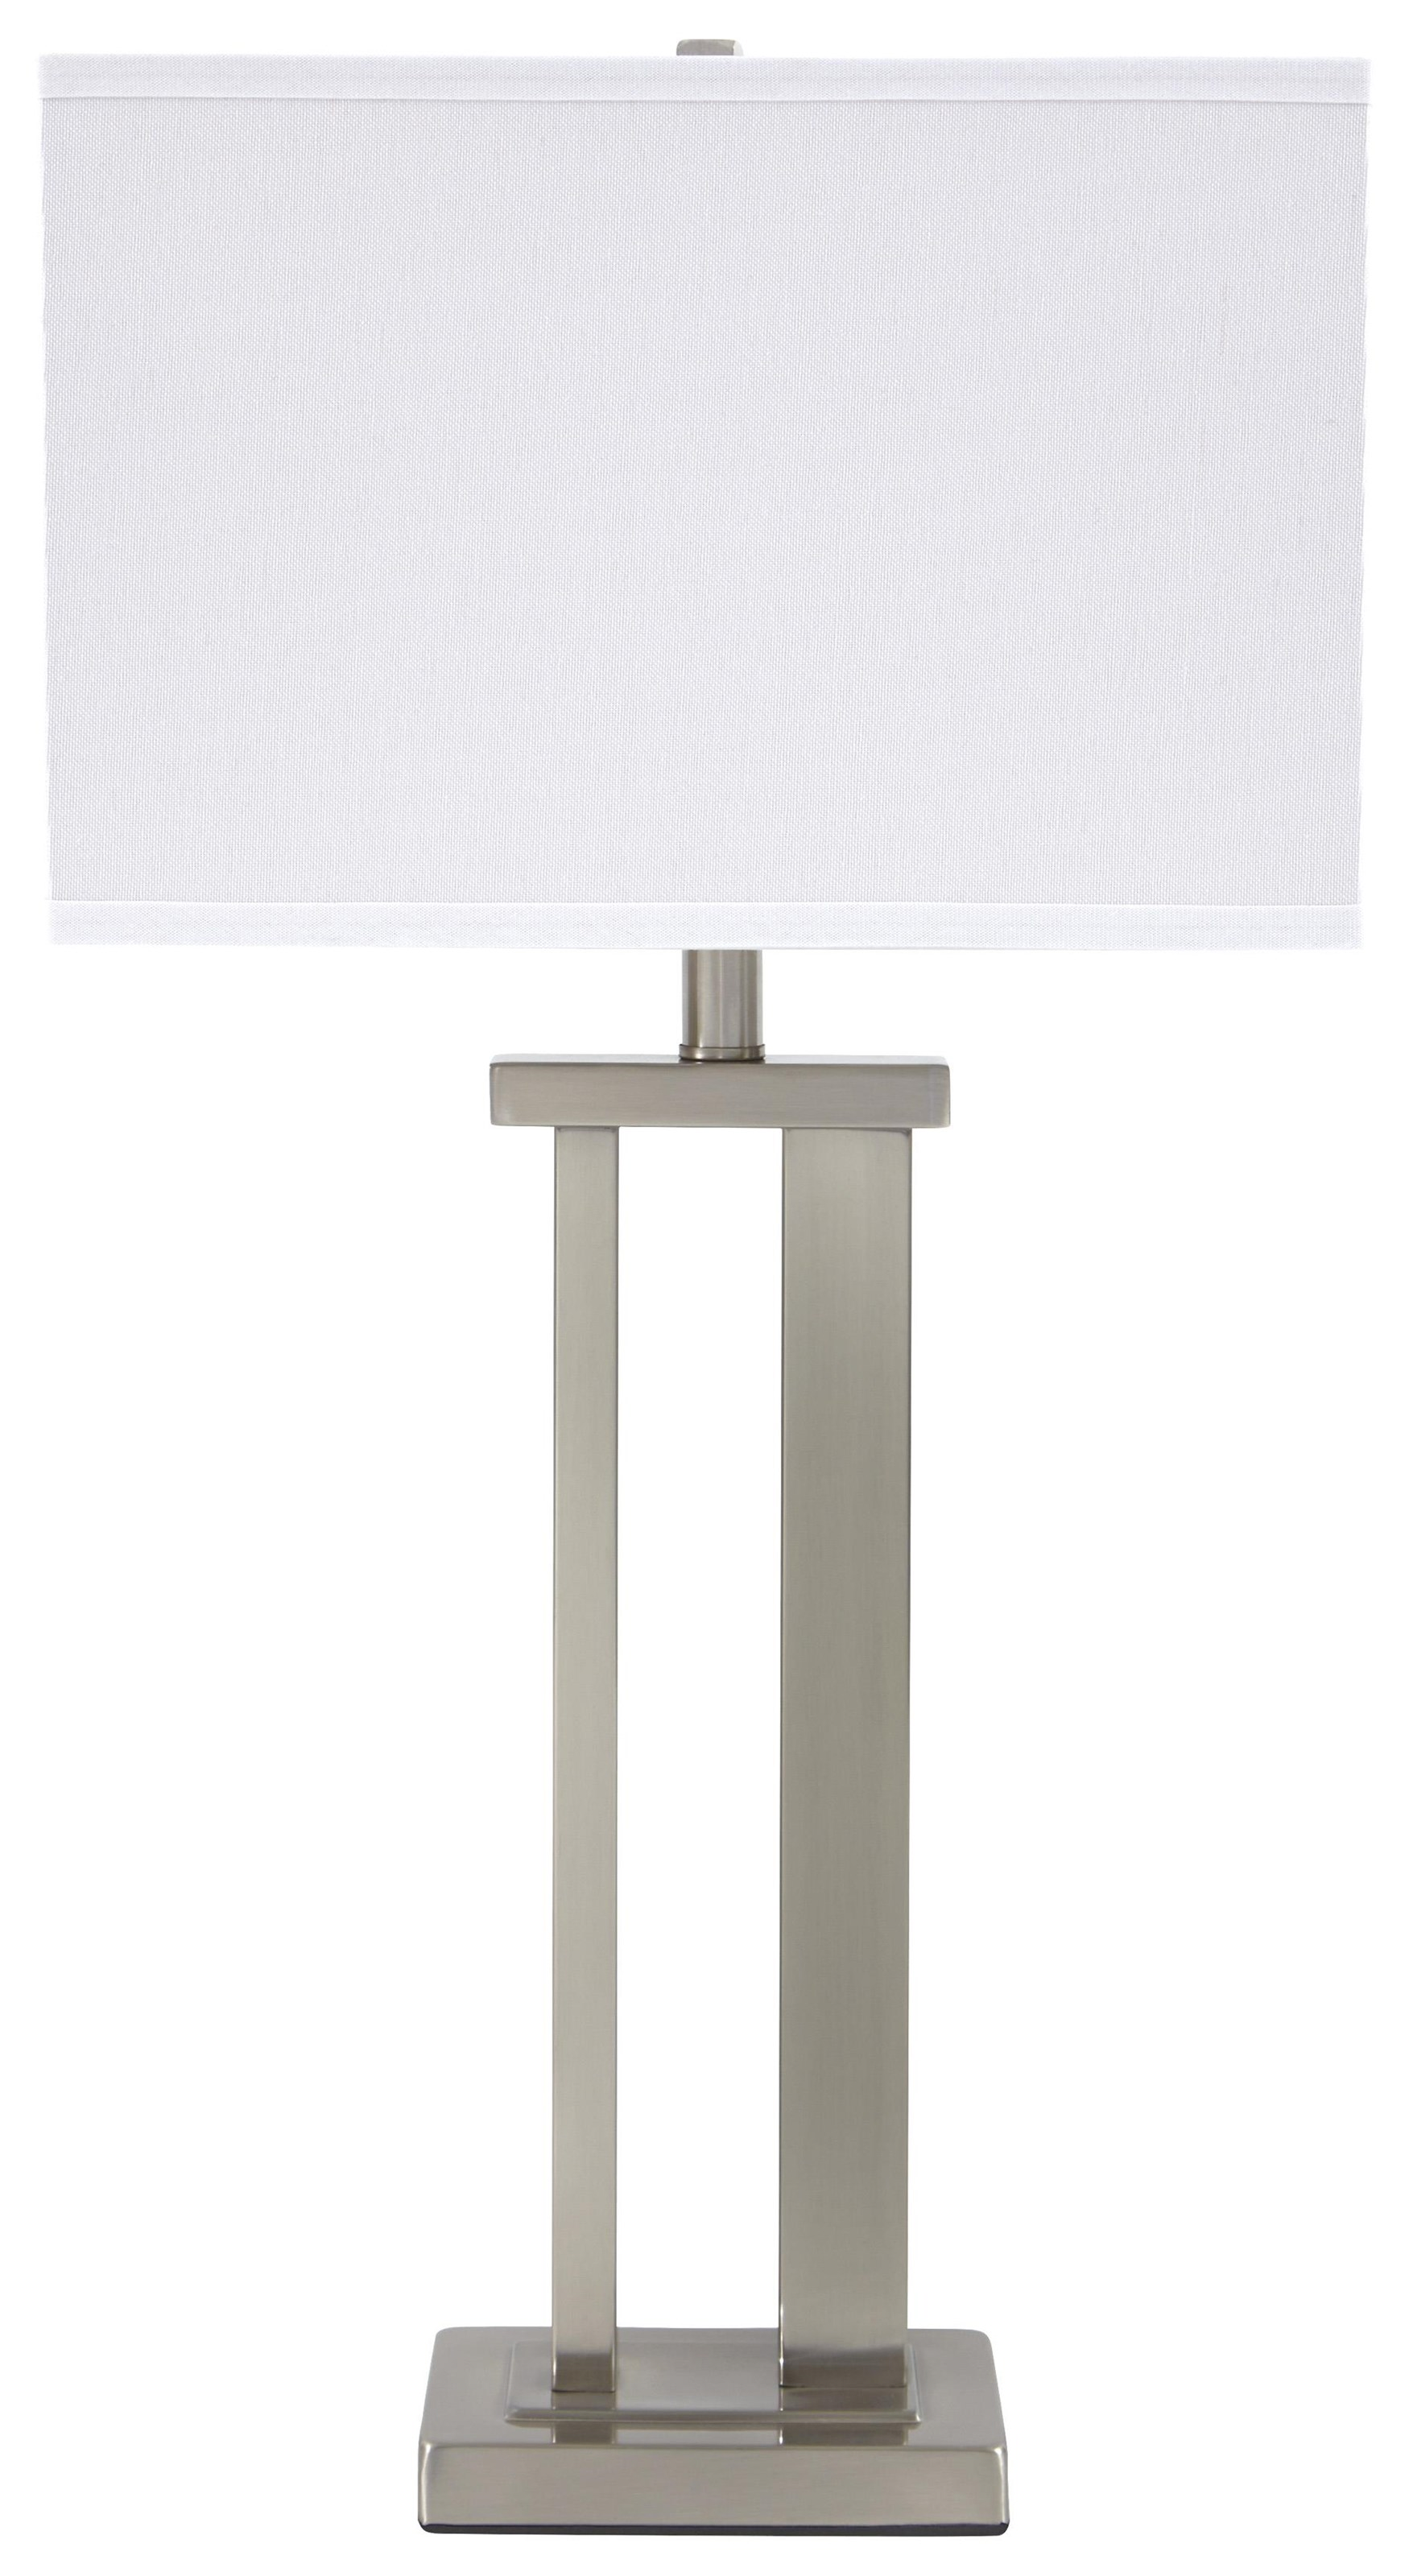 Lamps - Contemporary Set of 2 Table Lamps by Signature Design by Ashley at HomeWorld Furniture